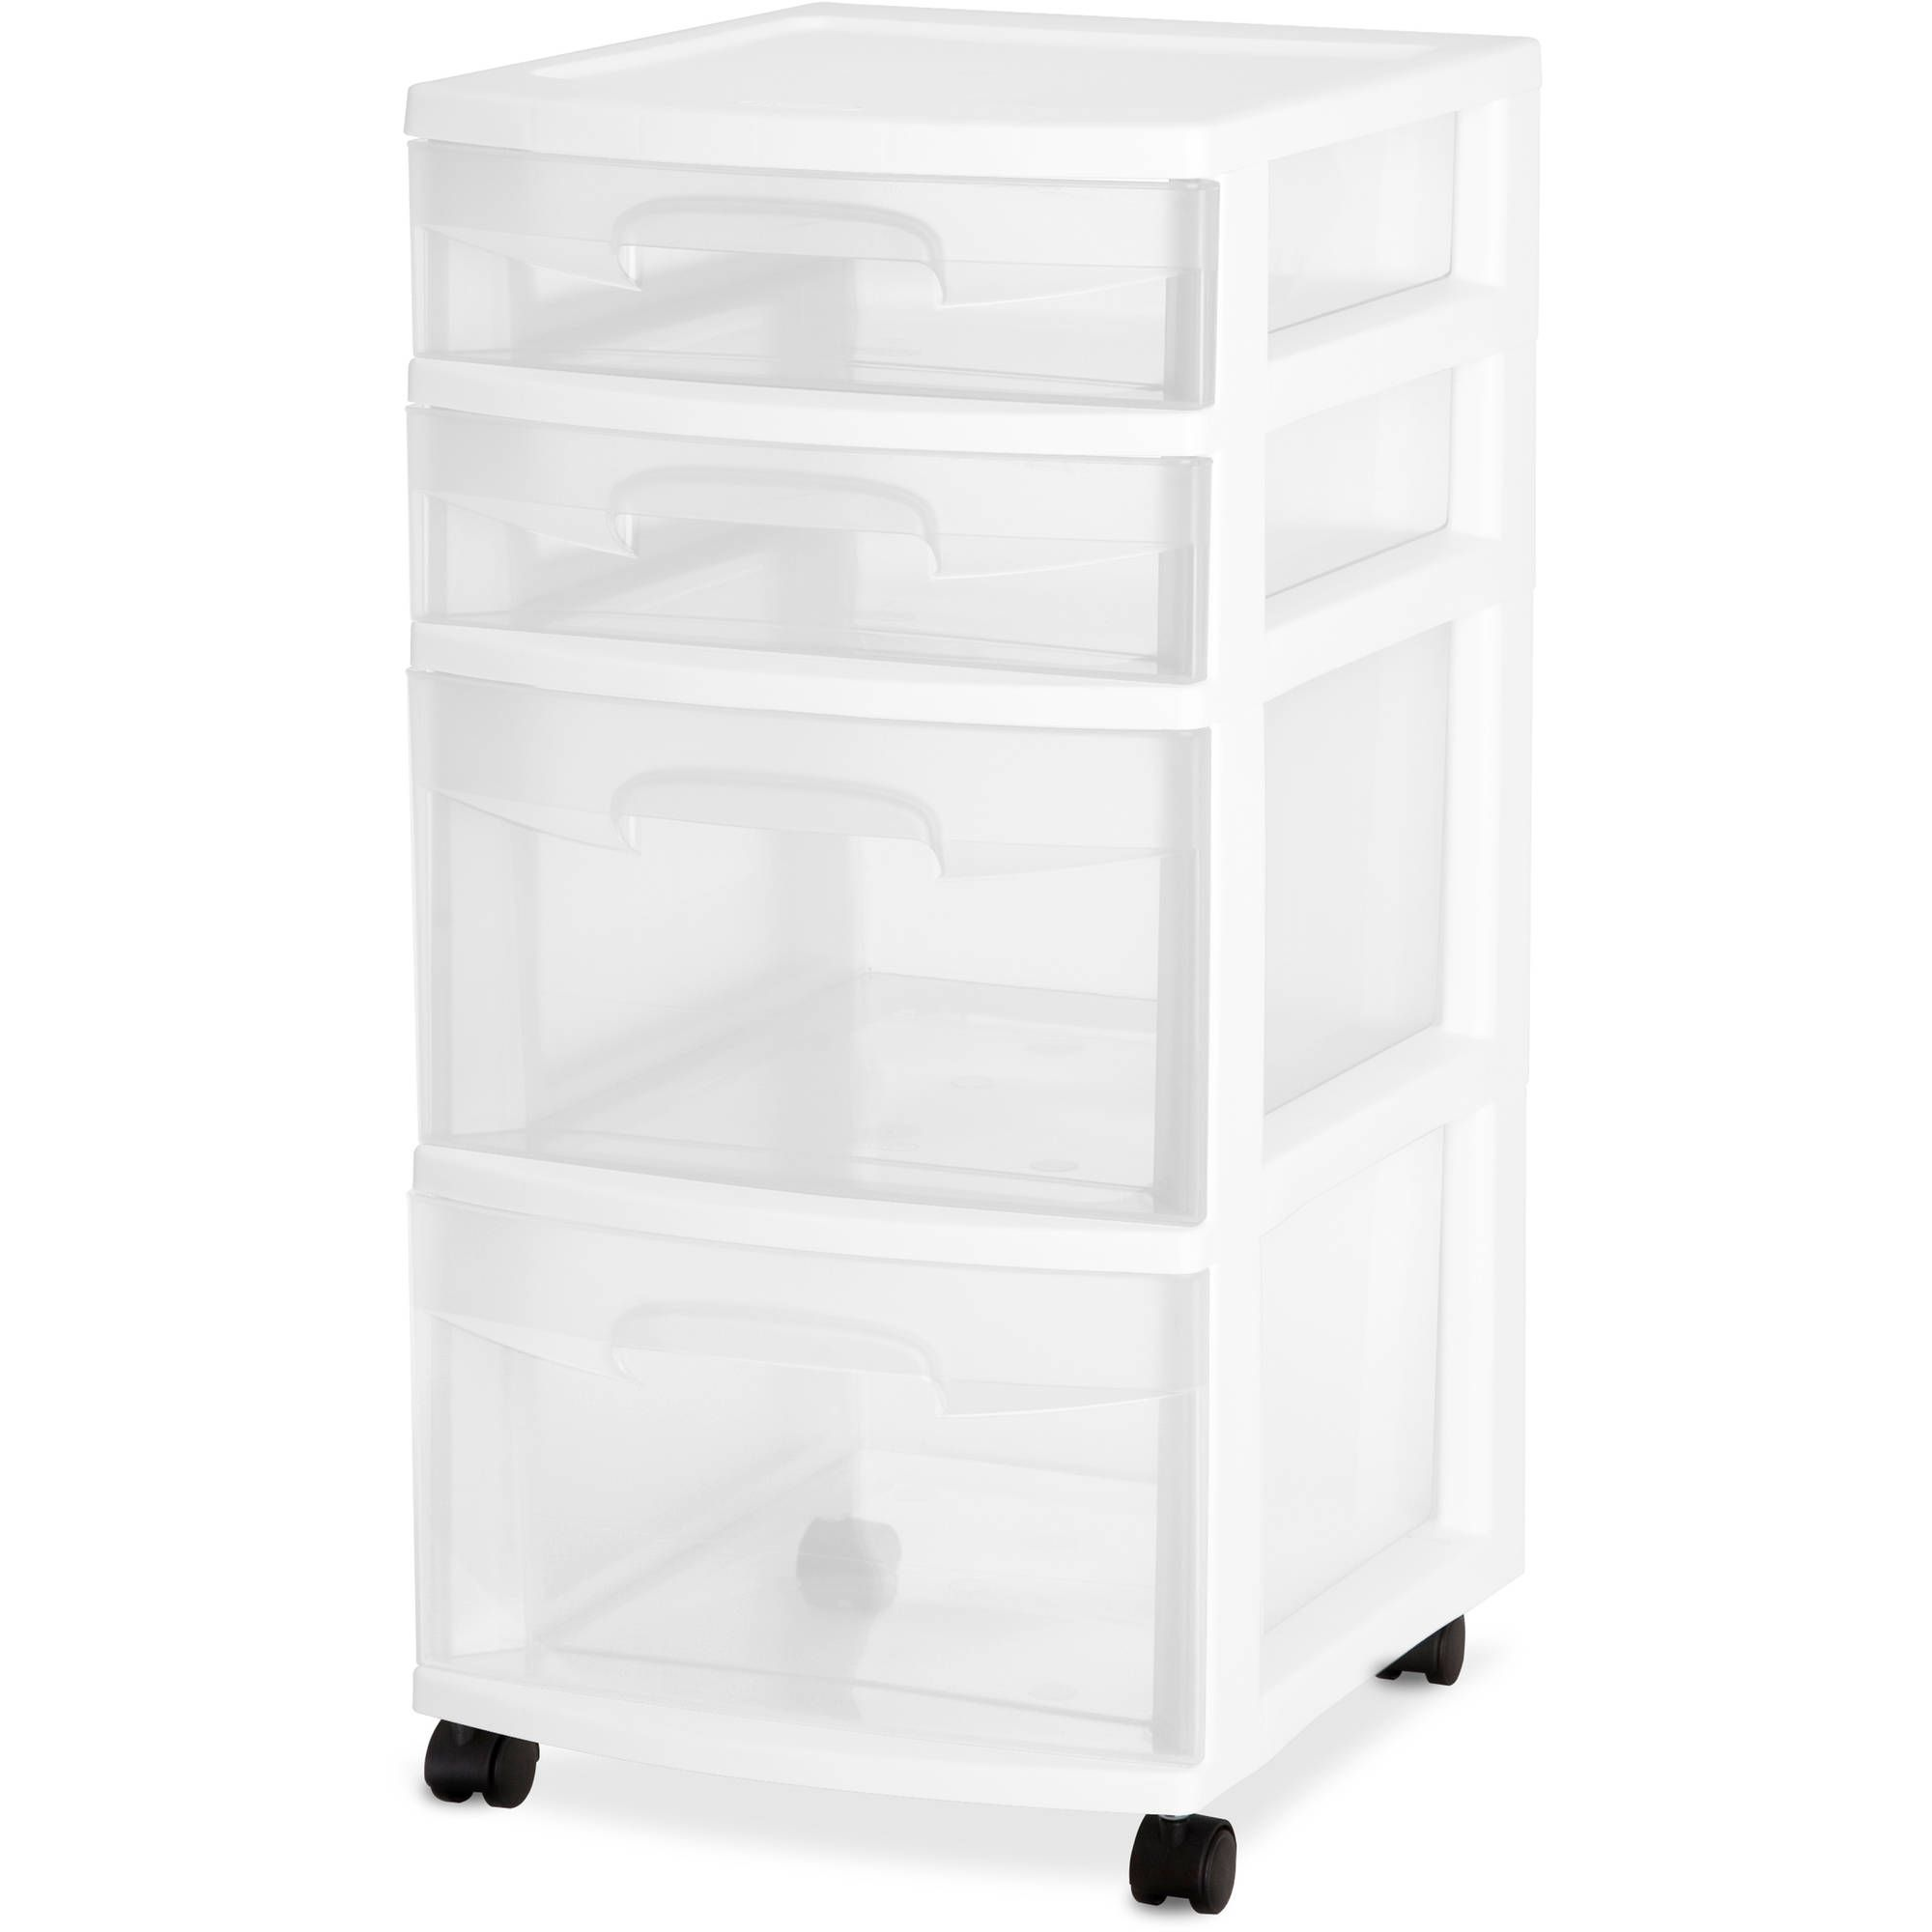 116 Reference Of 5 Drawer Cart Sterilite In 2020 Drawer Cart Drawers Sterilite